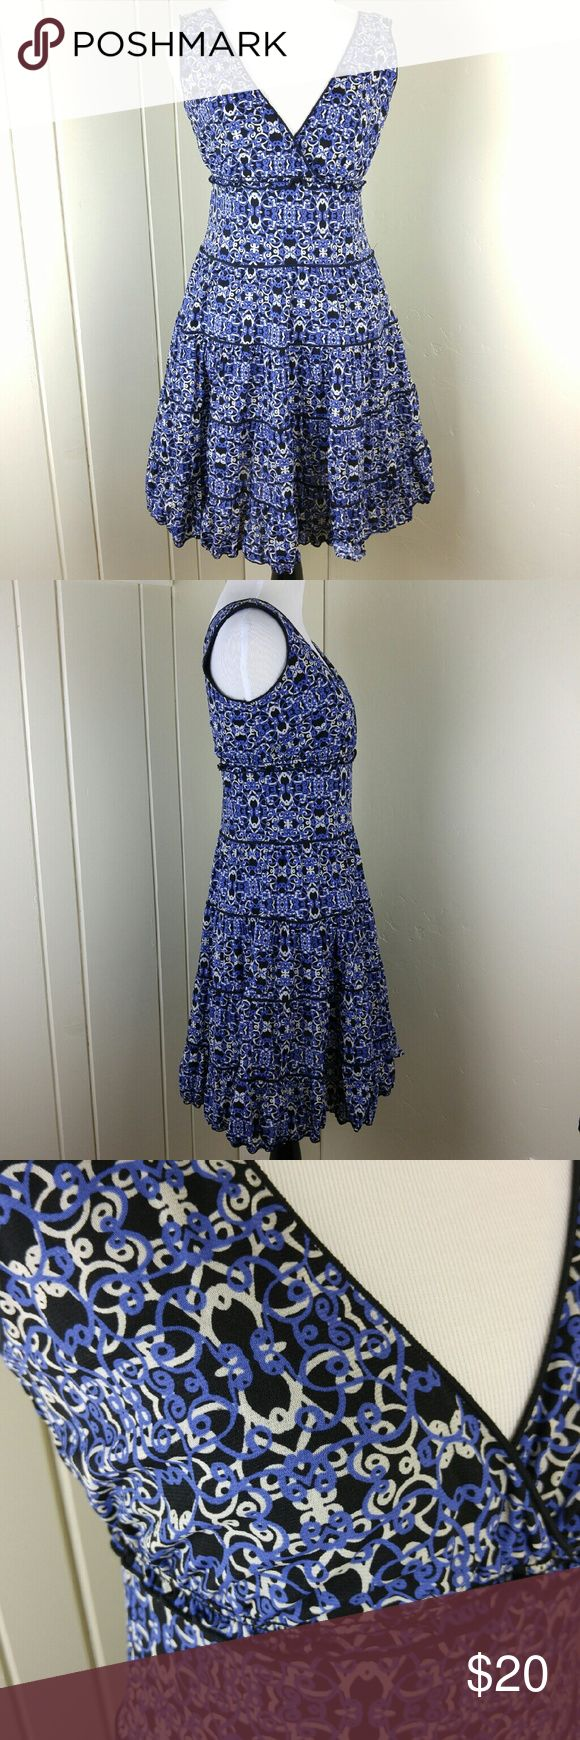 "Sweet and feminine patterned dress A bluish purple, cream, and black scroll patterned dress in great condition! Nylon. Lined. Pic 4 shows the back. 35"" length. Stretches. Style & Co Dresses"